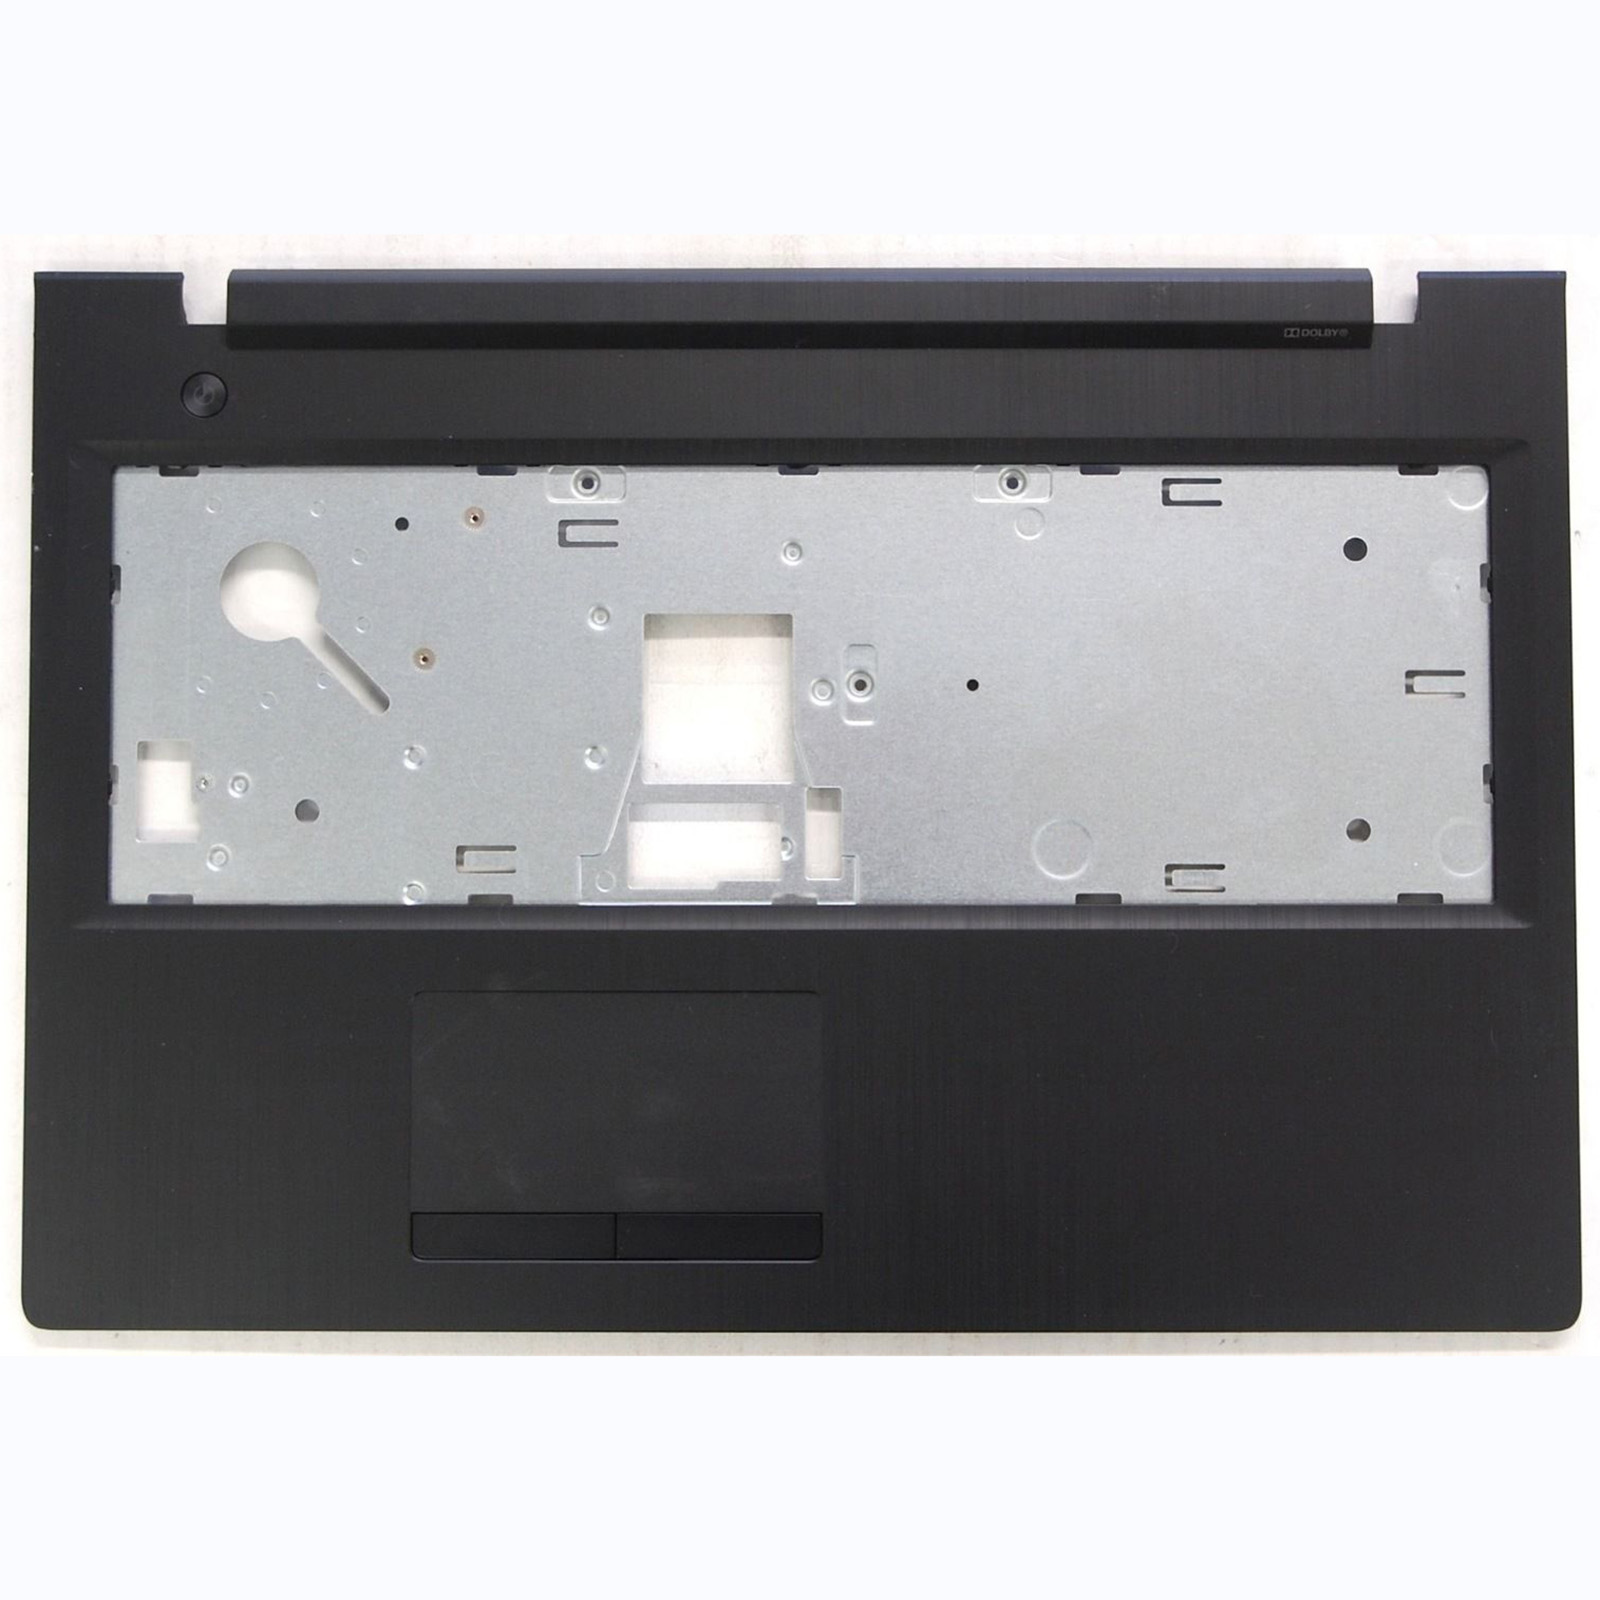 Details about Palmrest Cover touchpad for Lenovo Z50-70 Z50-75 G50 G50-30 G50-70 G50-45 G50-80